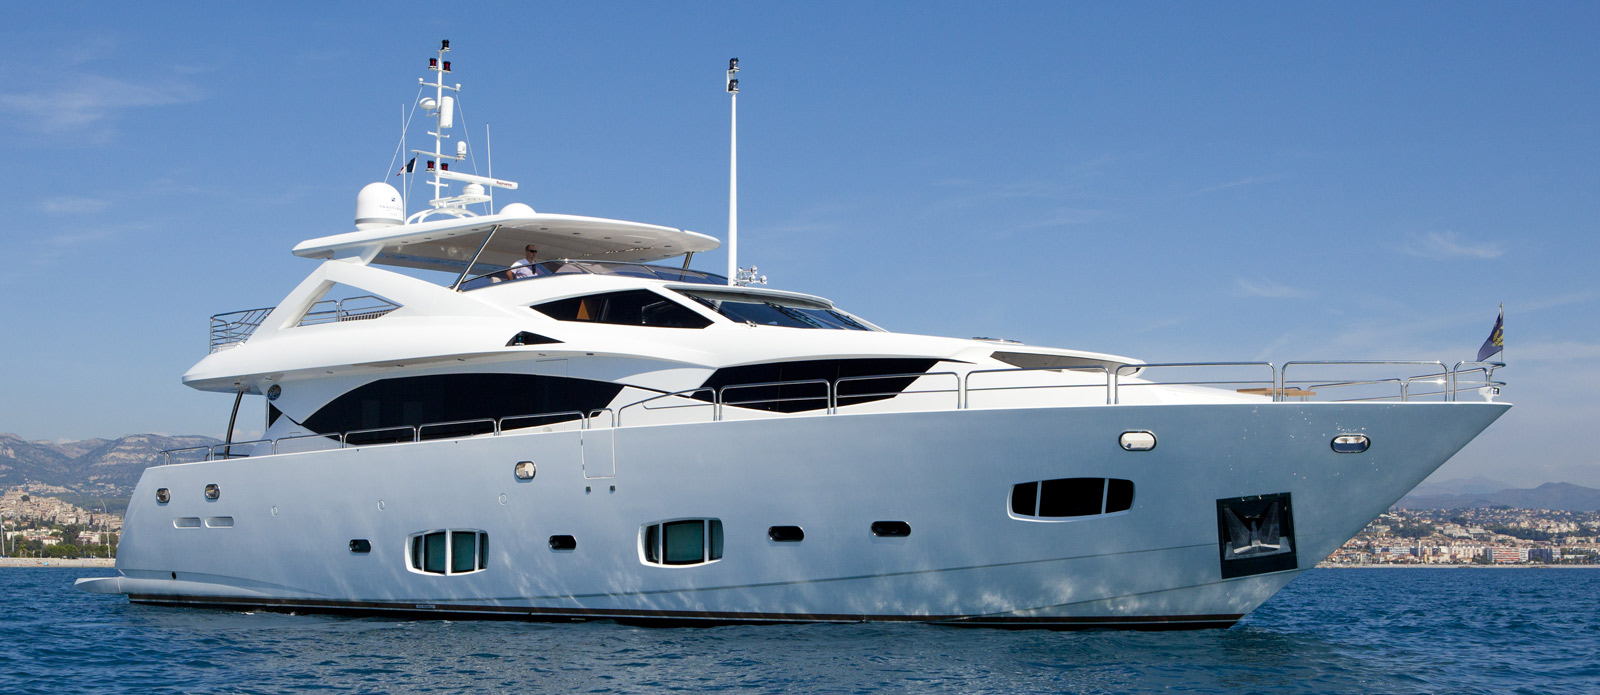 Sunseeker-30-Metre-Yacht-Tuppence-Side-Profile-Shot